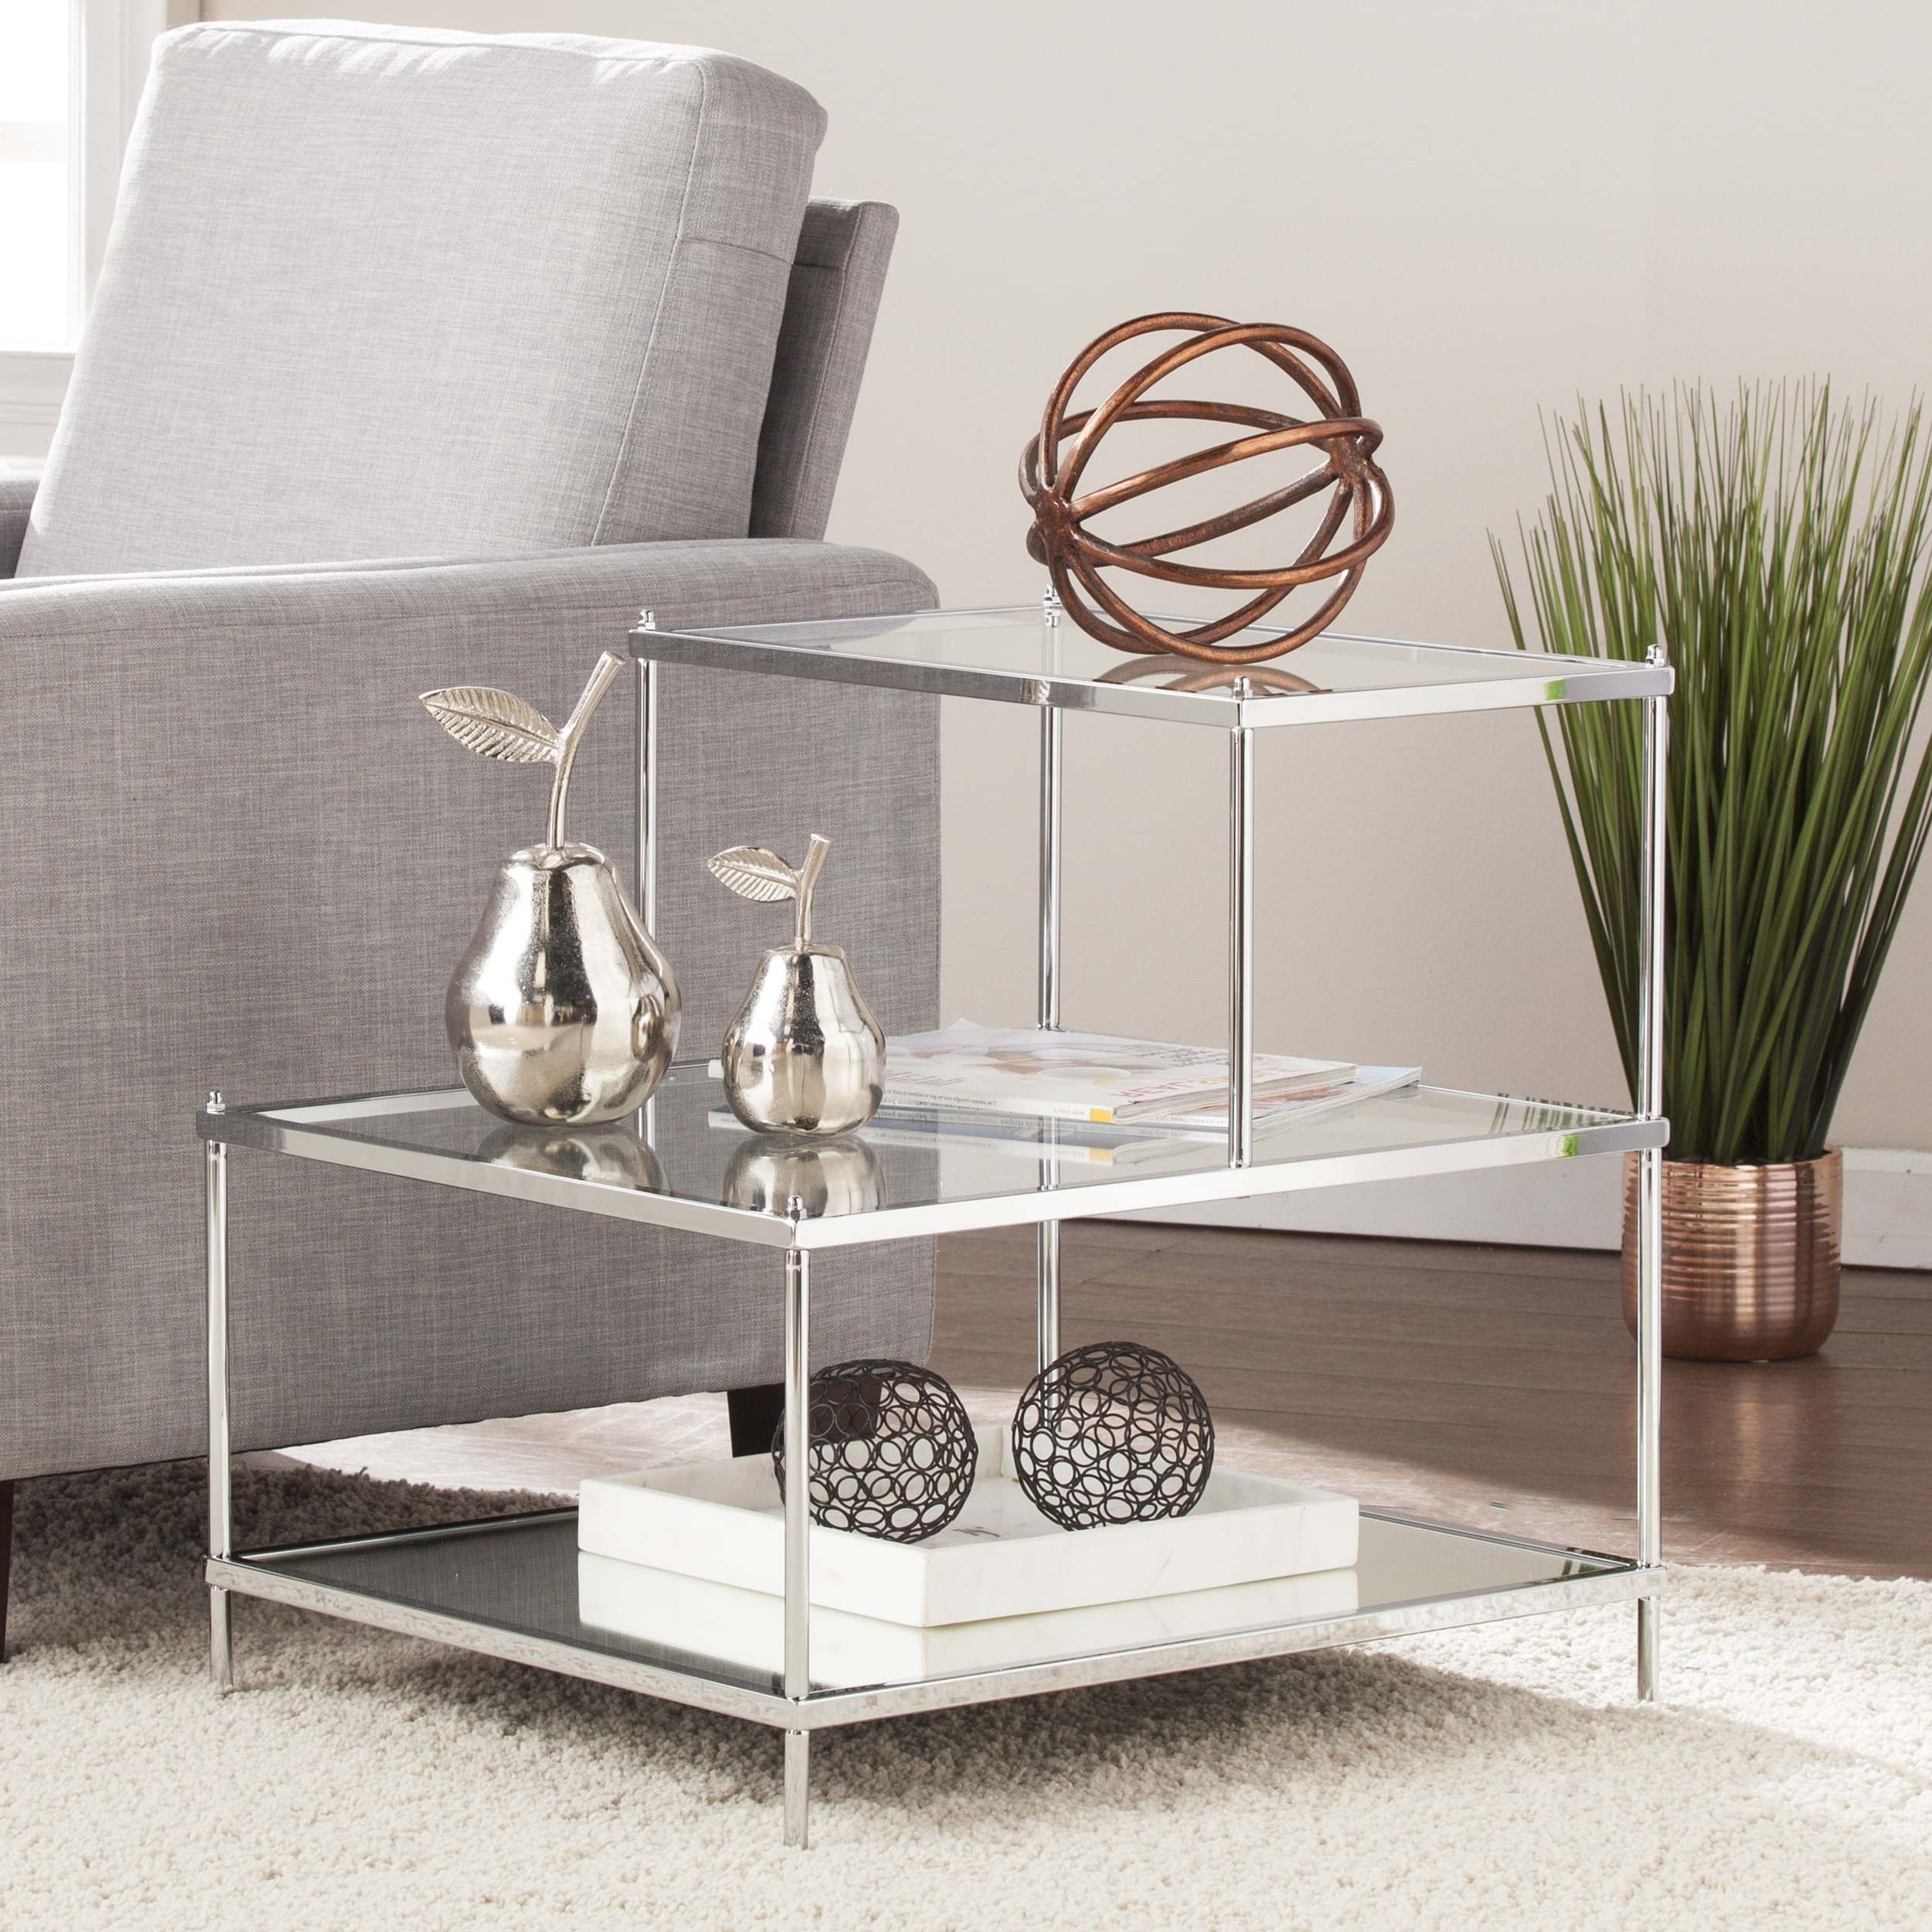 Silver Orchid Olivia Glam Mirrored Accent Table Chrome Small Intended For Widely Used Silver Orchid Olivia Chrome Mirrored Coffee Cocktail Tables (View 19 of 20)